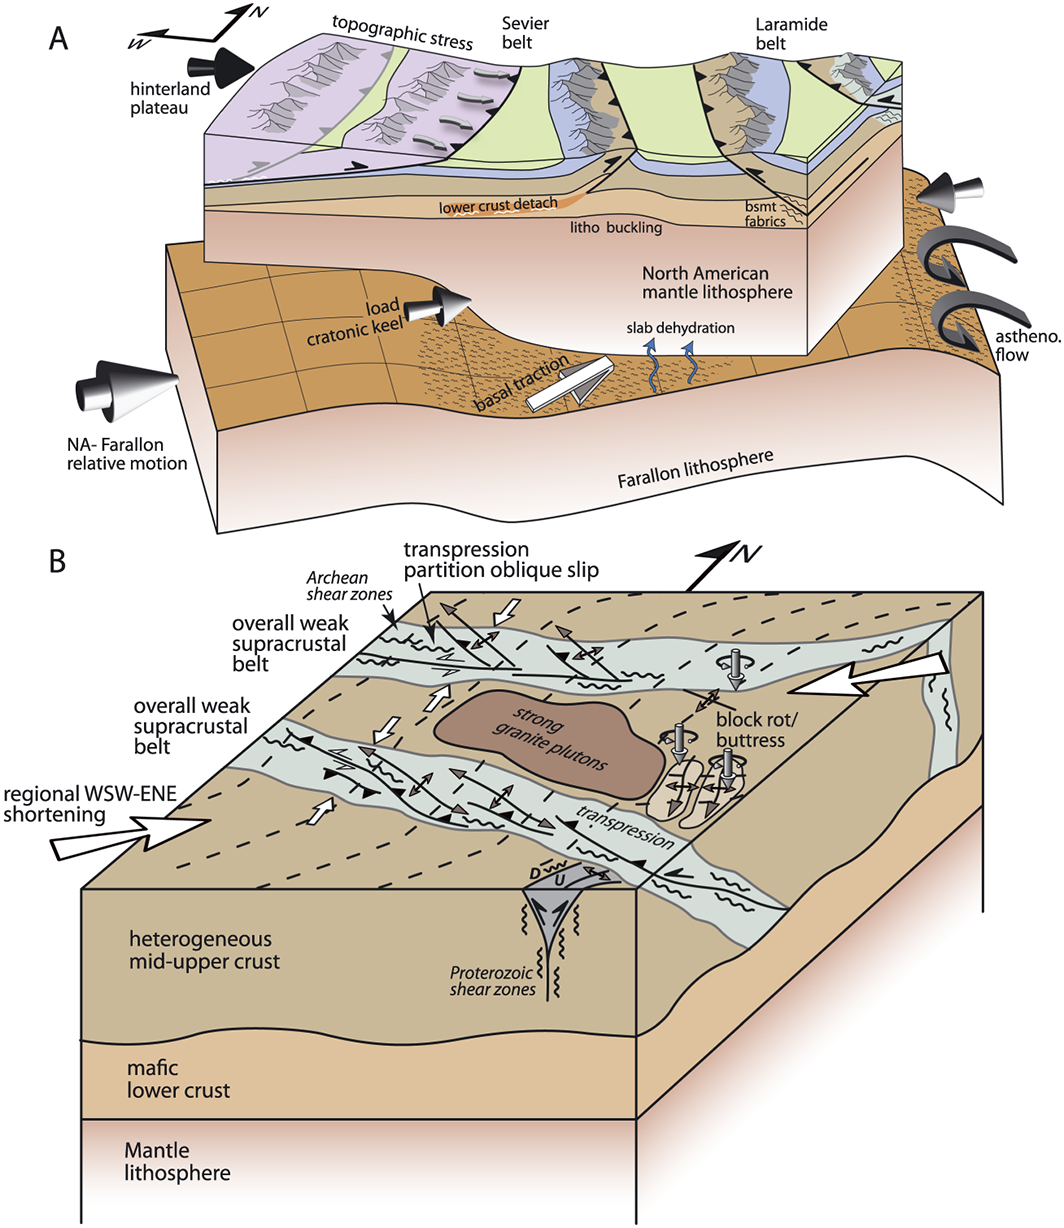 Tectonic evolution of a laramide transverse structural zone tectonic evolution of a laramide transverse structural zone sweetwater arch wyoming a schematic lithospheric block diagram illustrates potential stress ccuart